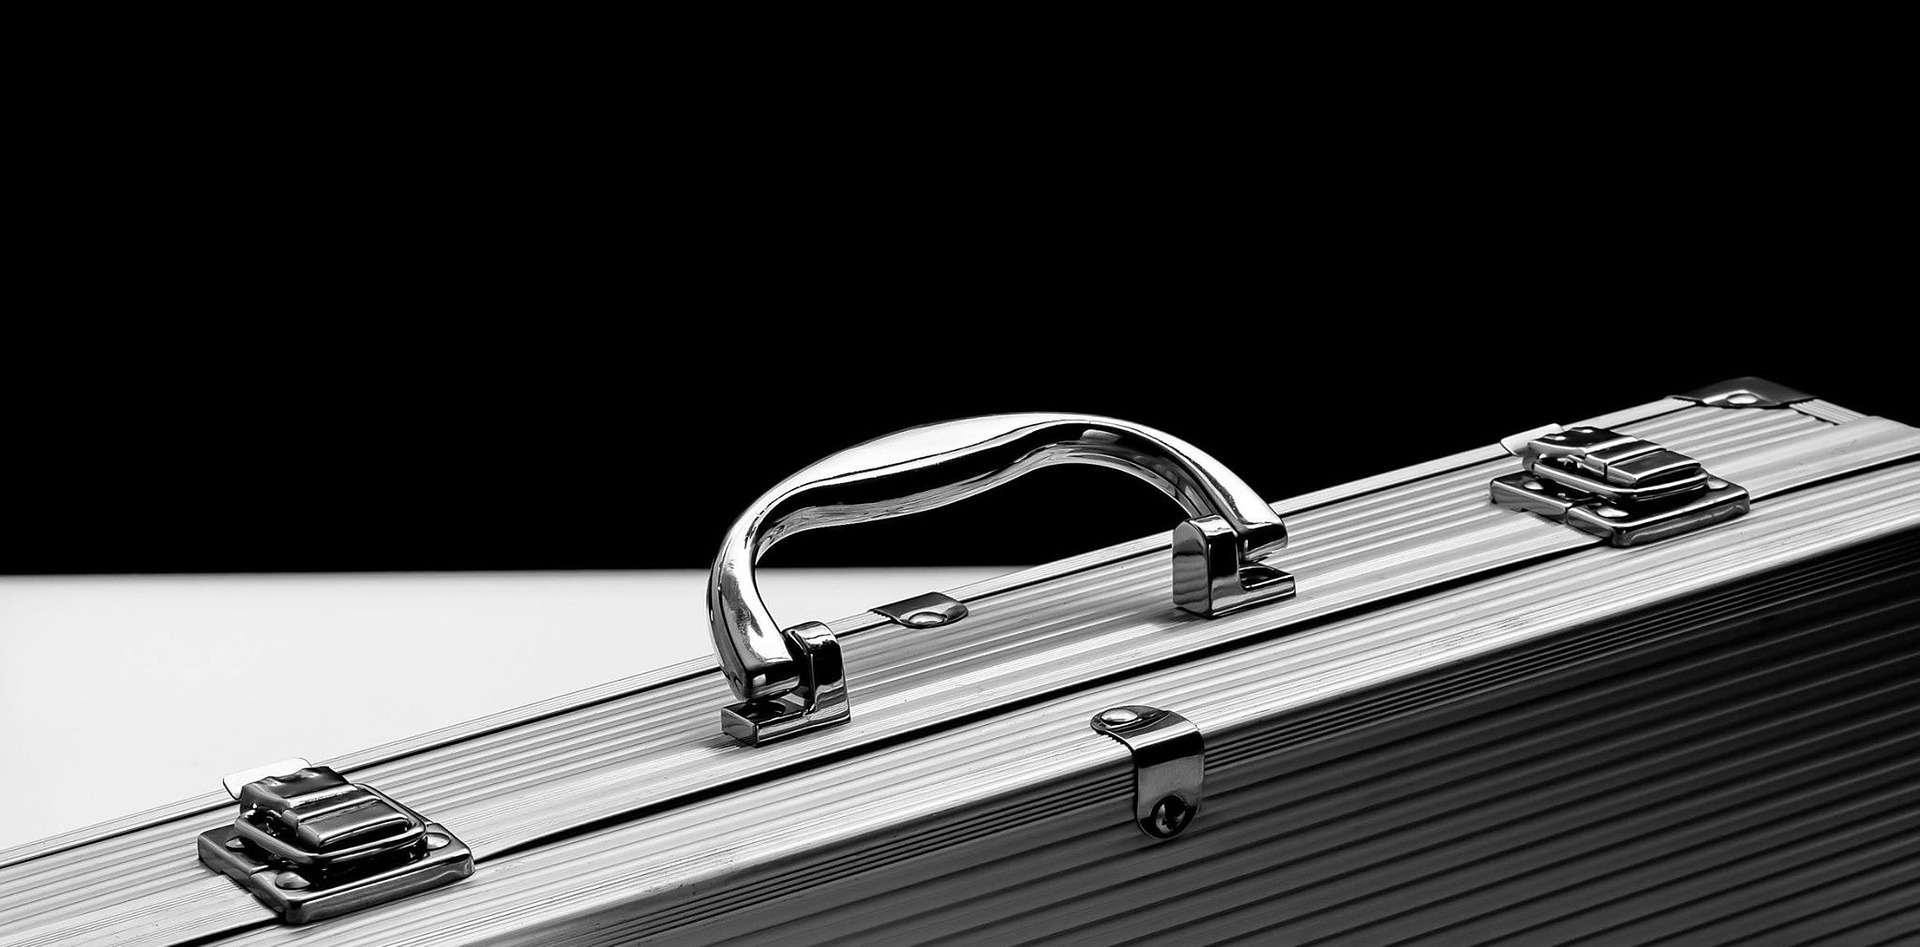 Silver Briefcase against black background